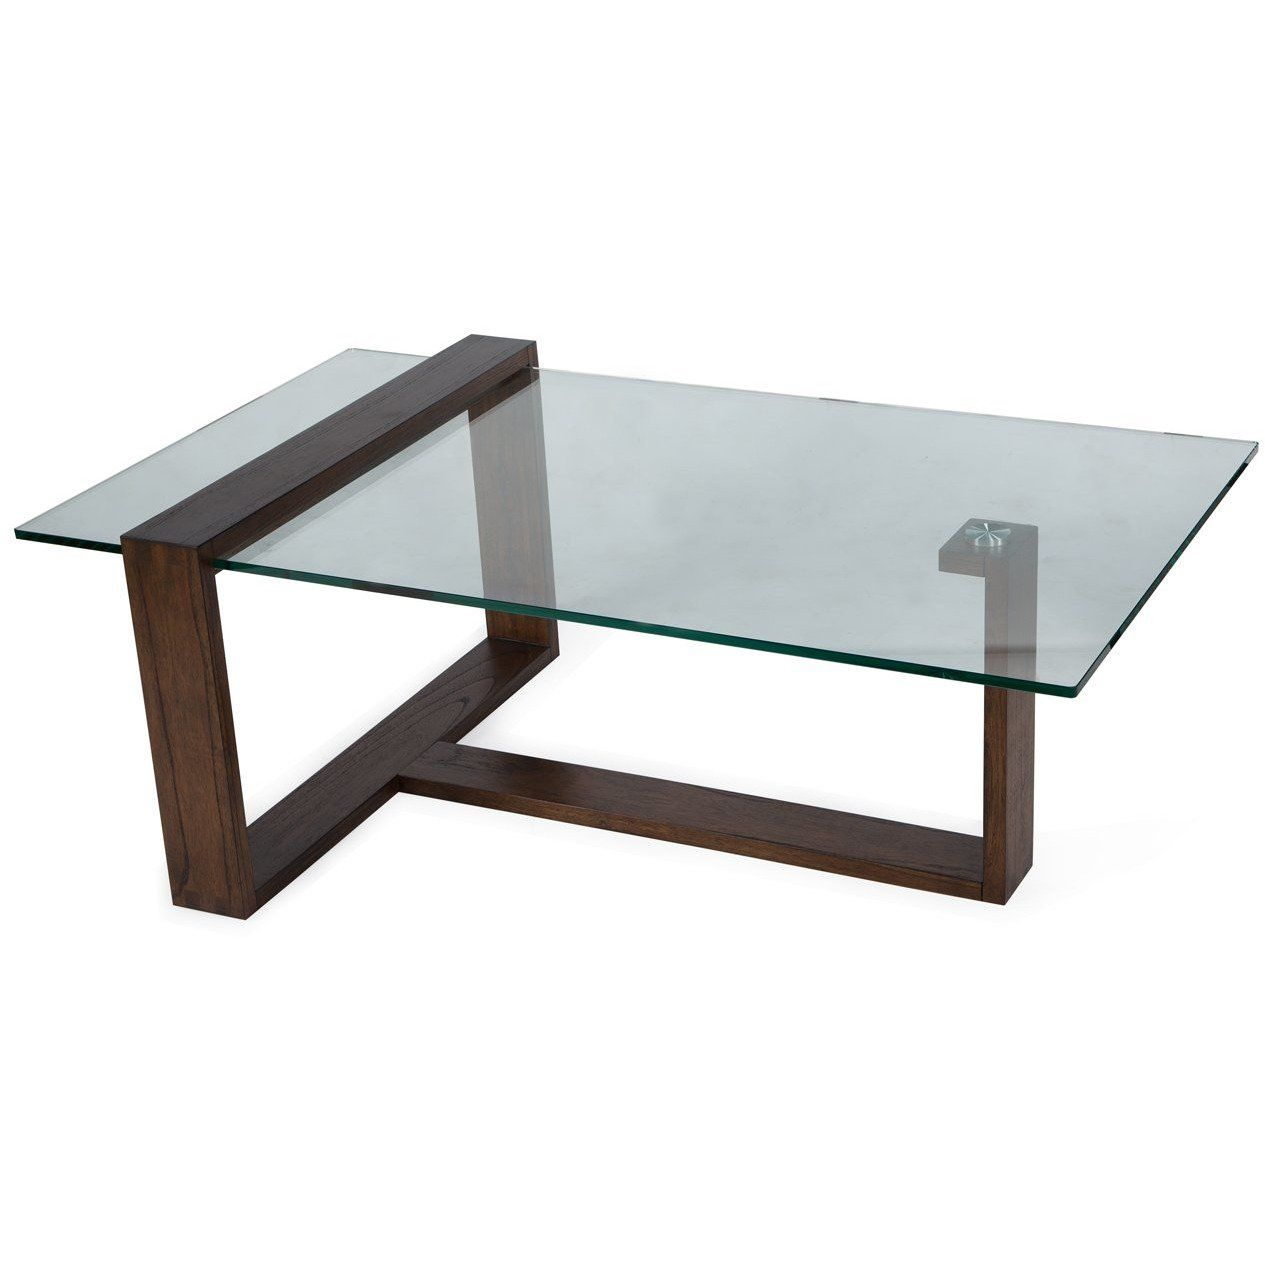 20 One Piece Glass Coffee Table Best Way To Paint Furniture Check More At Http Www Buzzfolders Com One Piece G Coffee Table Coffee Table Habitat Furniture [ 1200 x 1200 Pixel ]